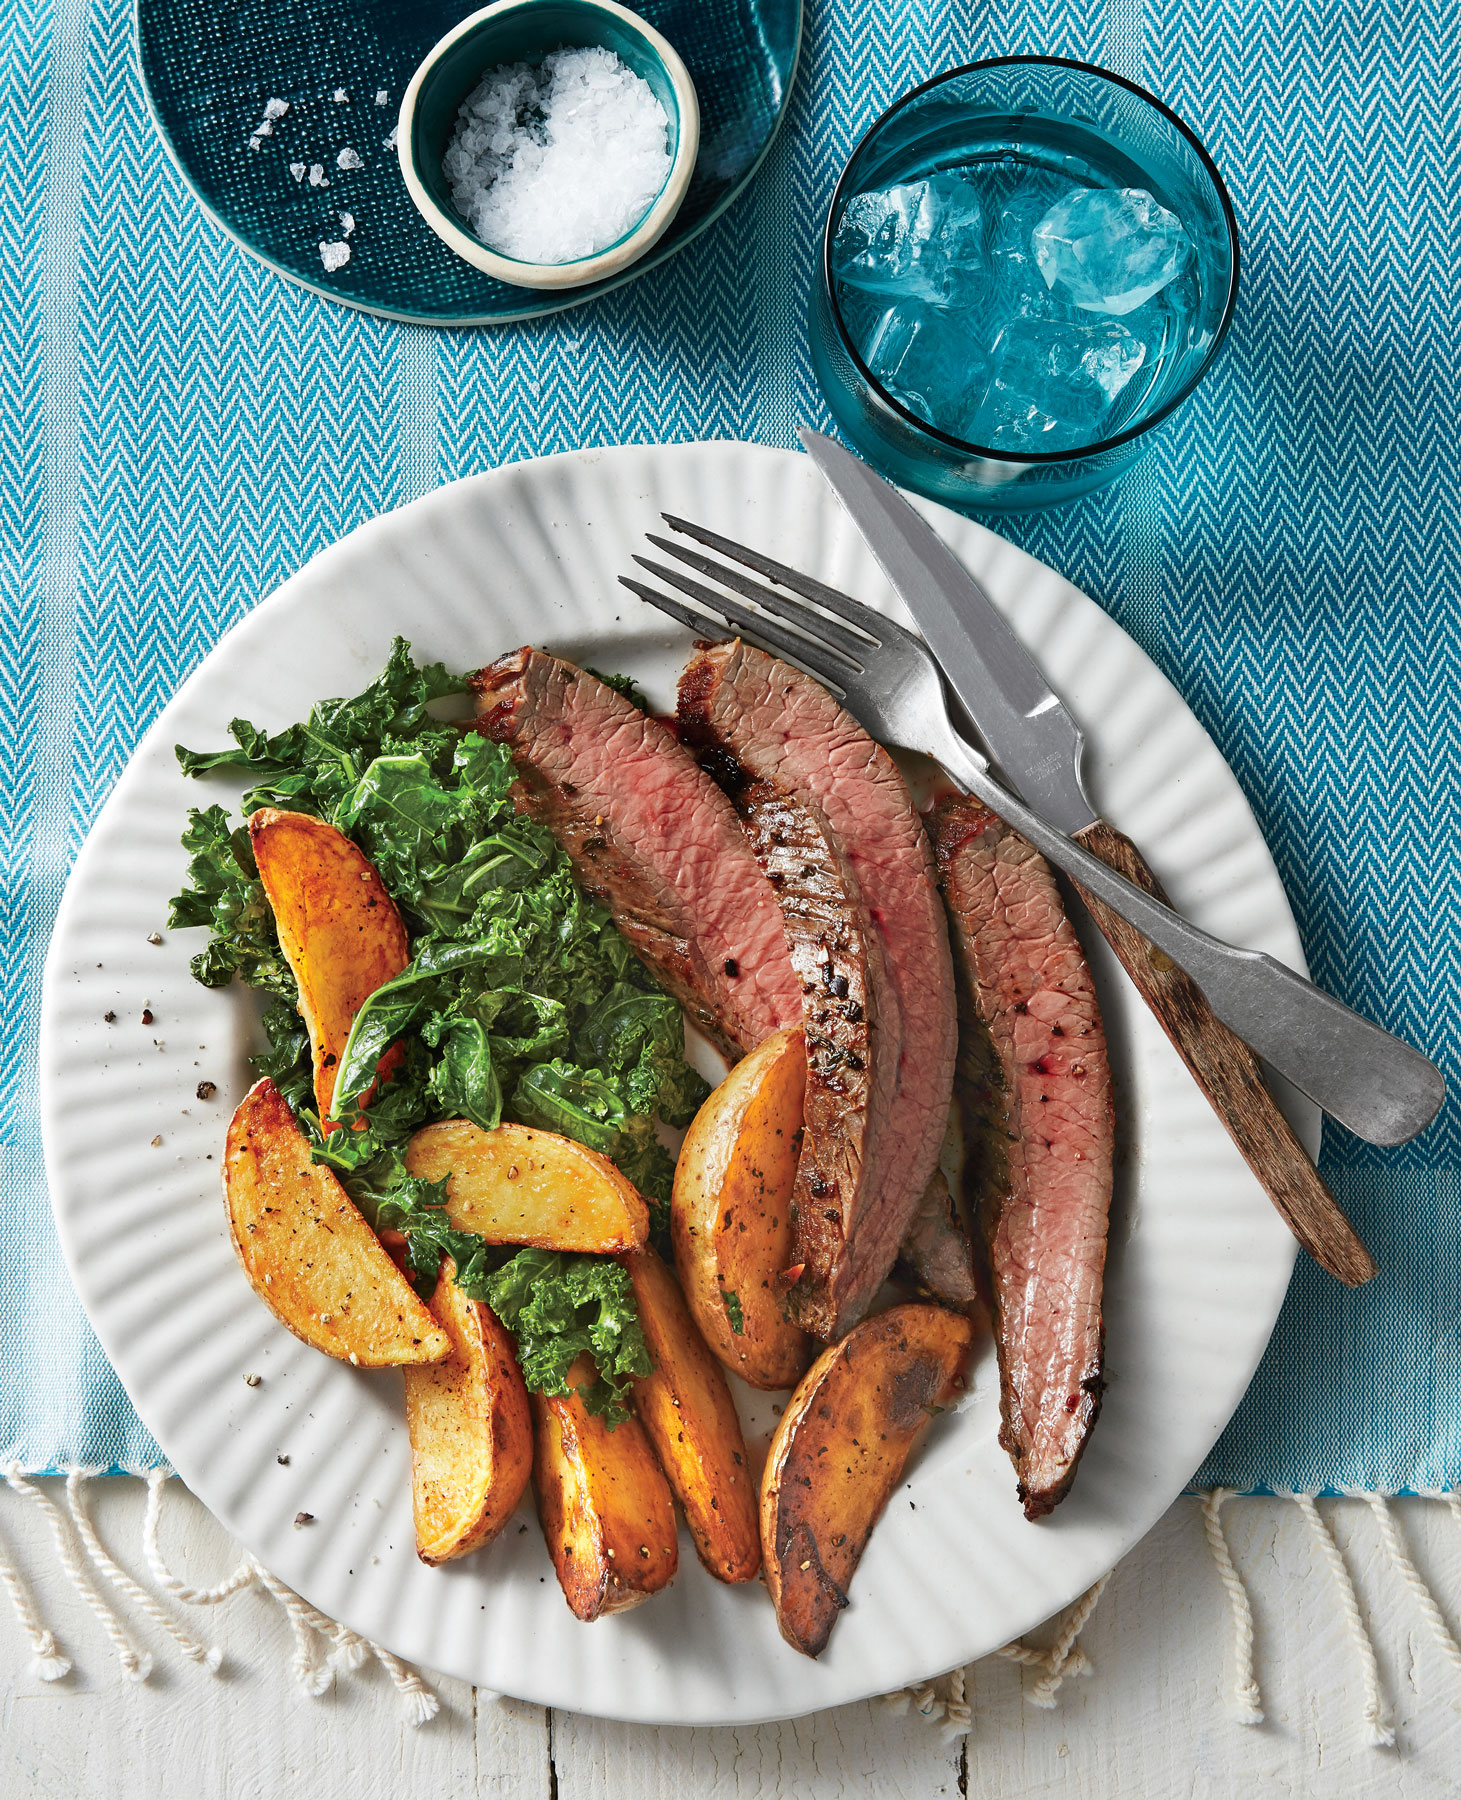 Sheet Pan Flank Steak, Greens, and Yukon Gold Fries image